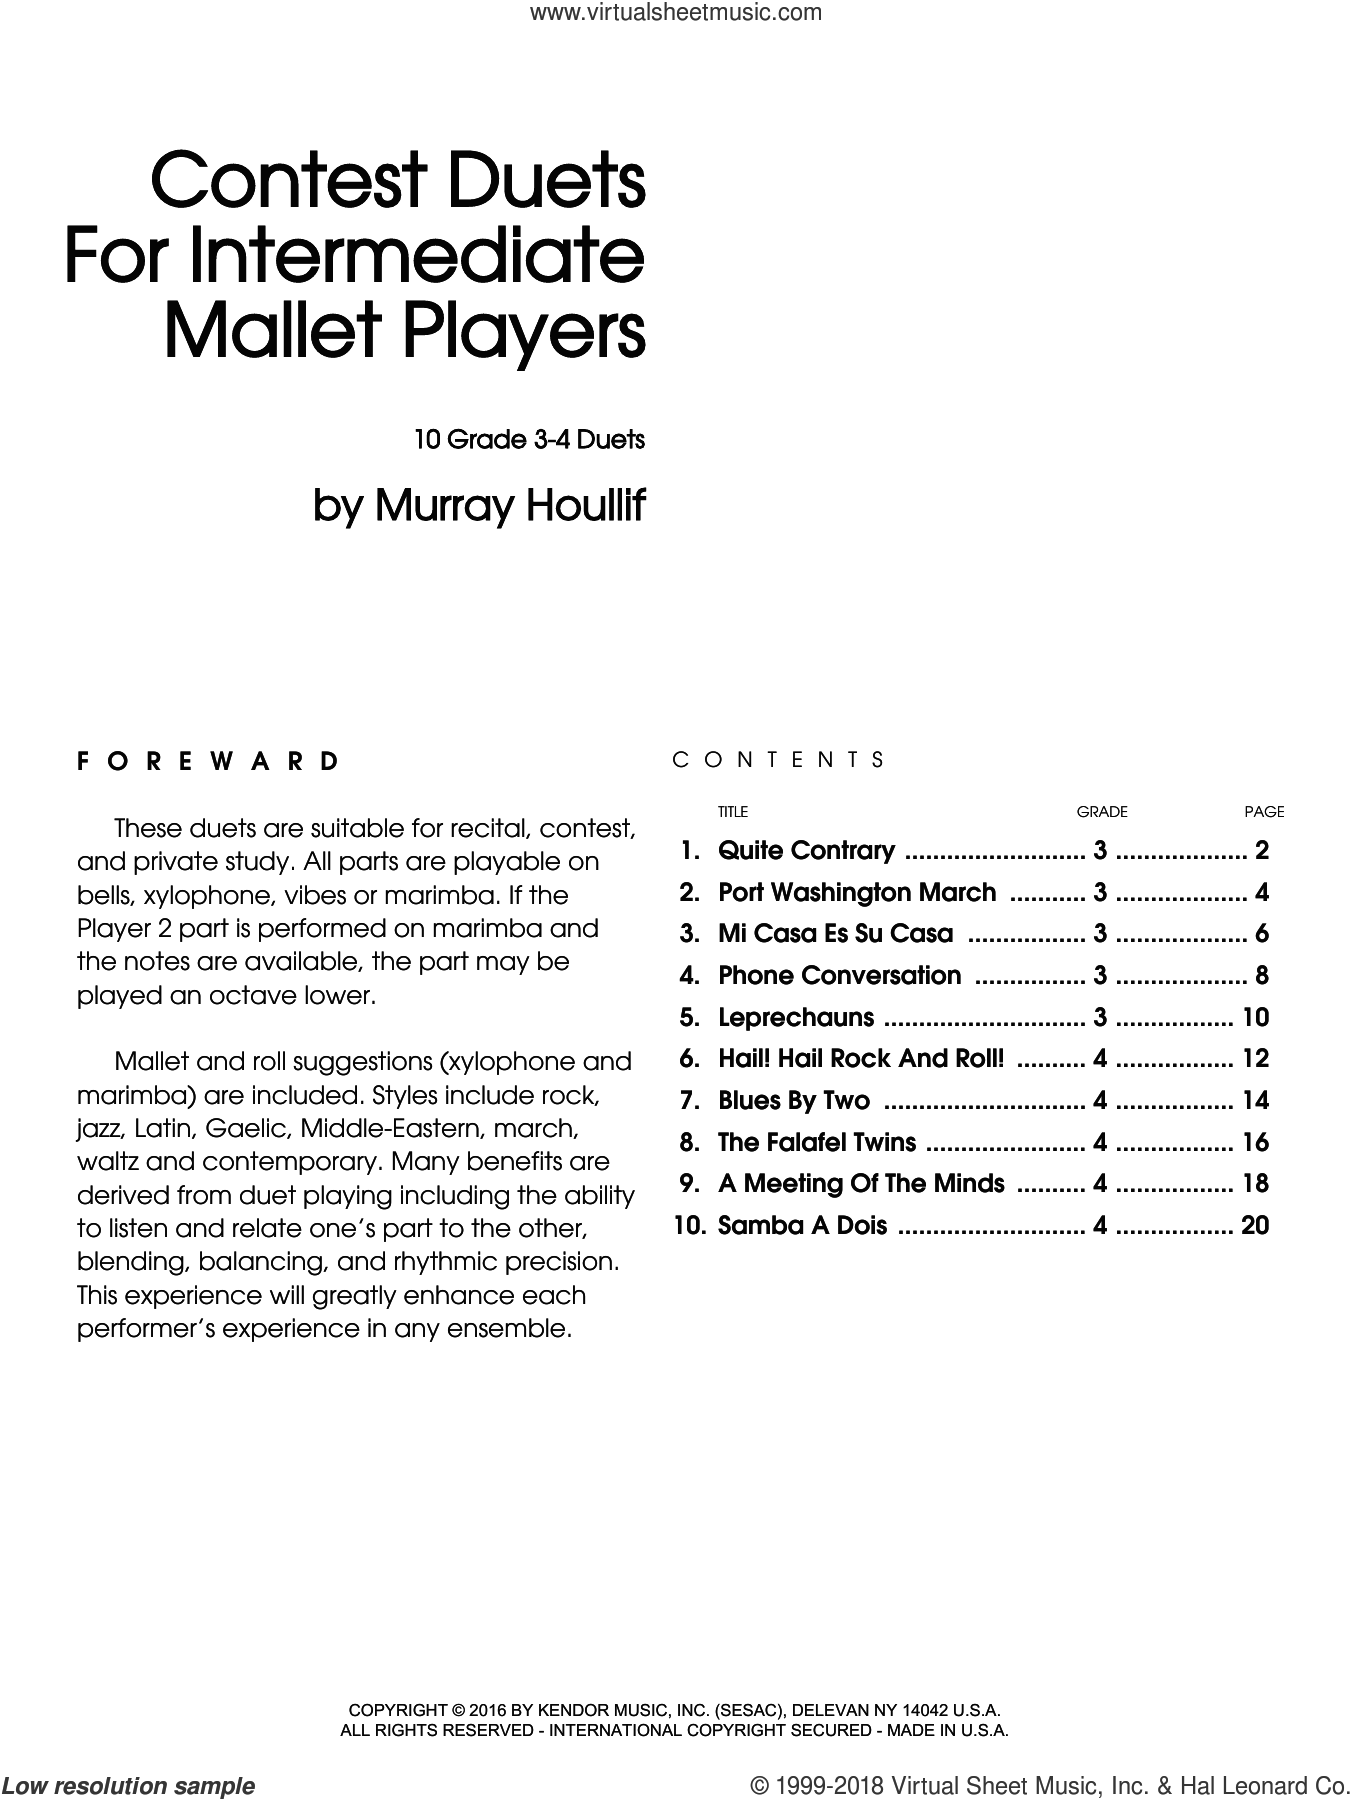 Contest Duets For Intermediate Mallet Players sheet music for percussions by Houllif